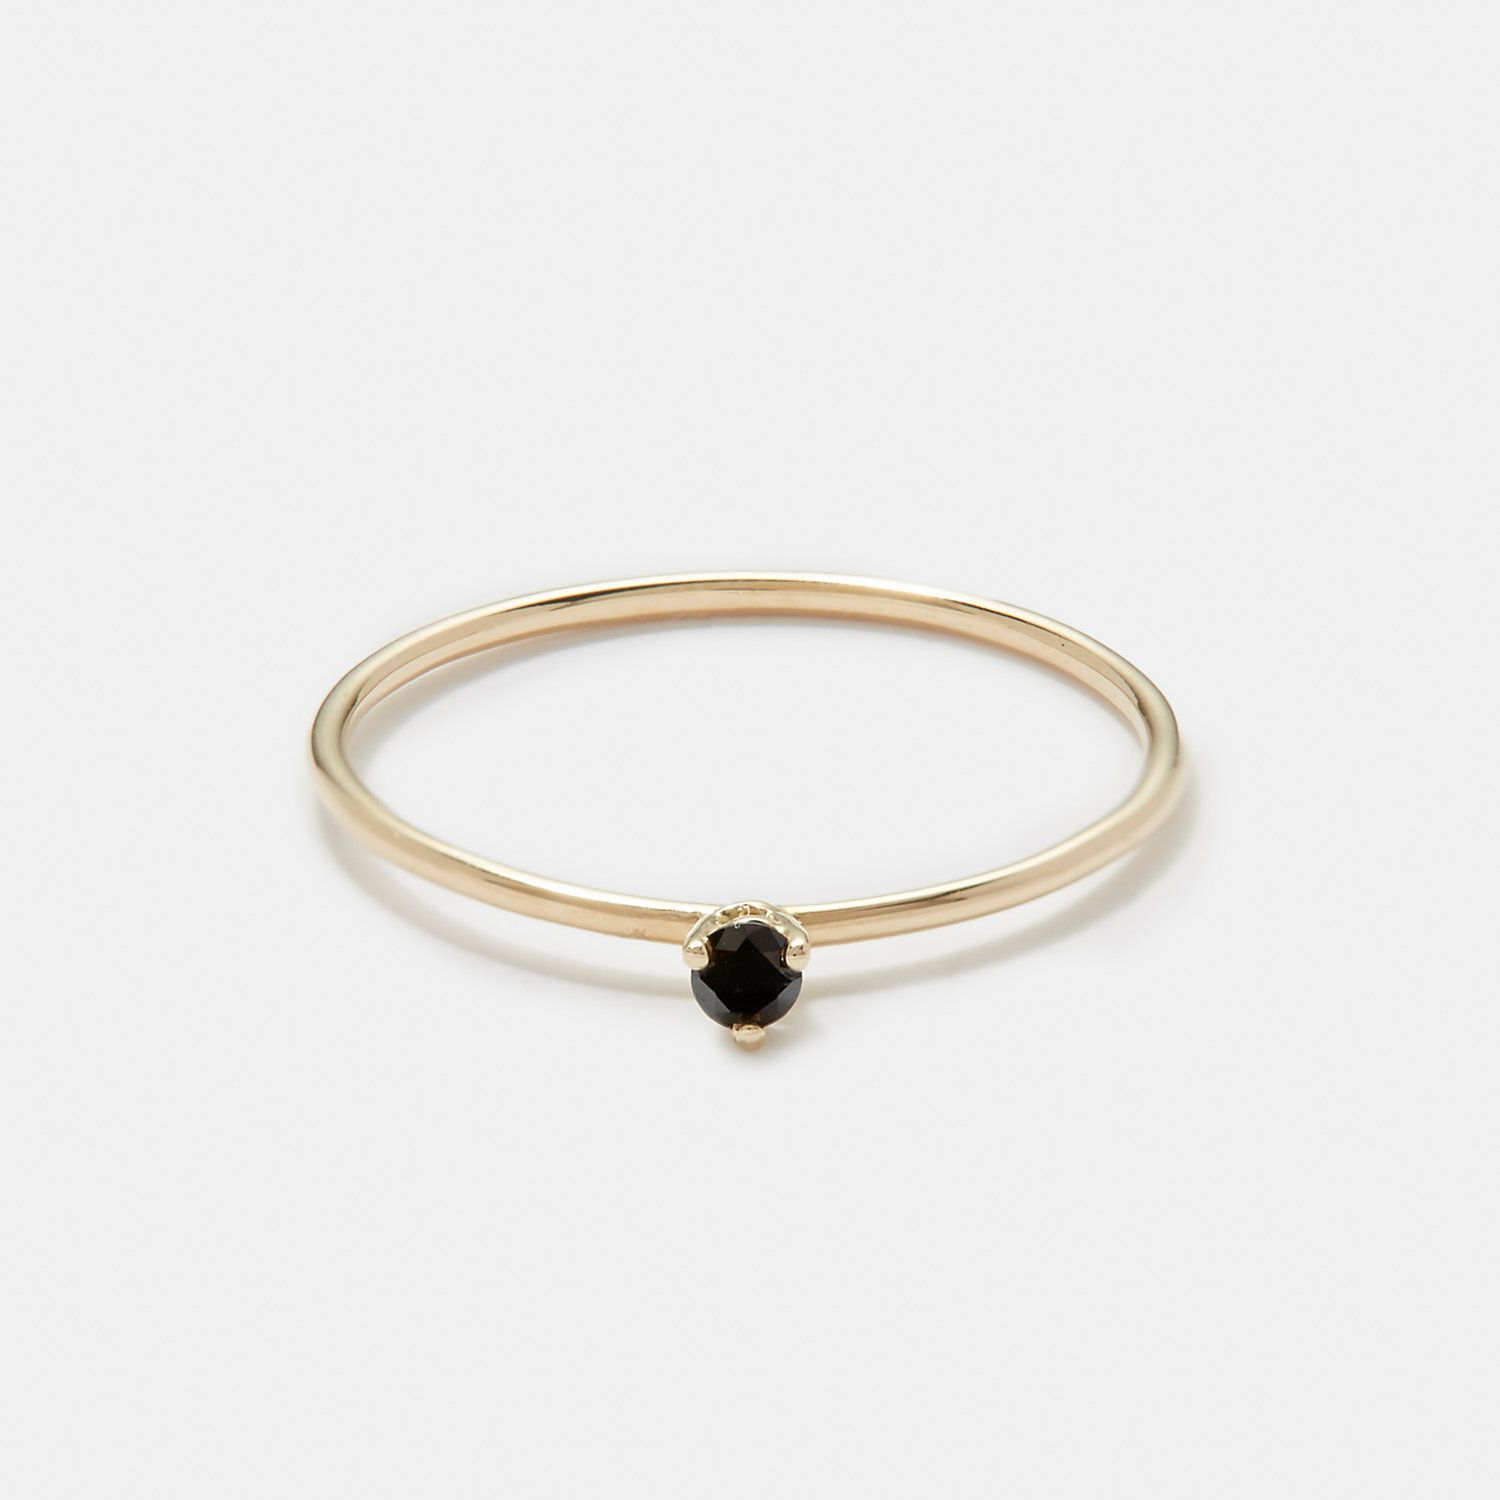 Tiny solitaire ring with black diamond adornment pinterest